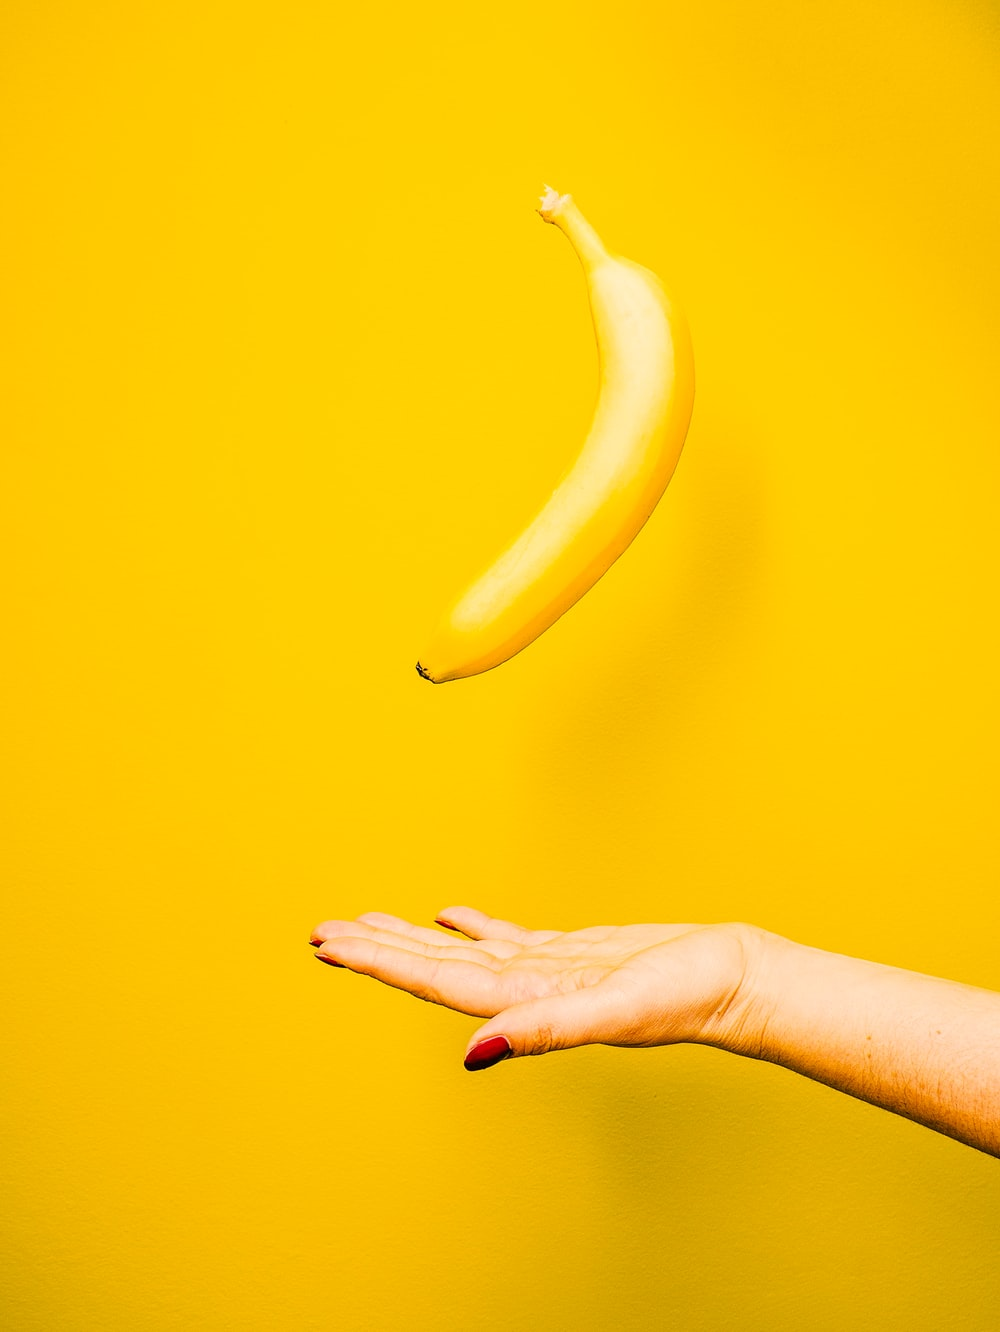 Photo Via: https://unsplash.com/photos/4krHo2fSil0, banana mid-air, yellow background.